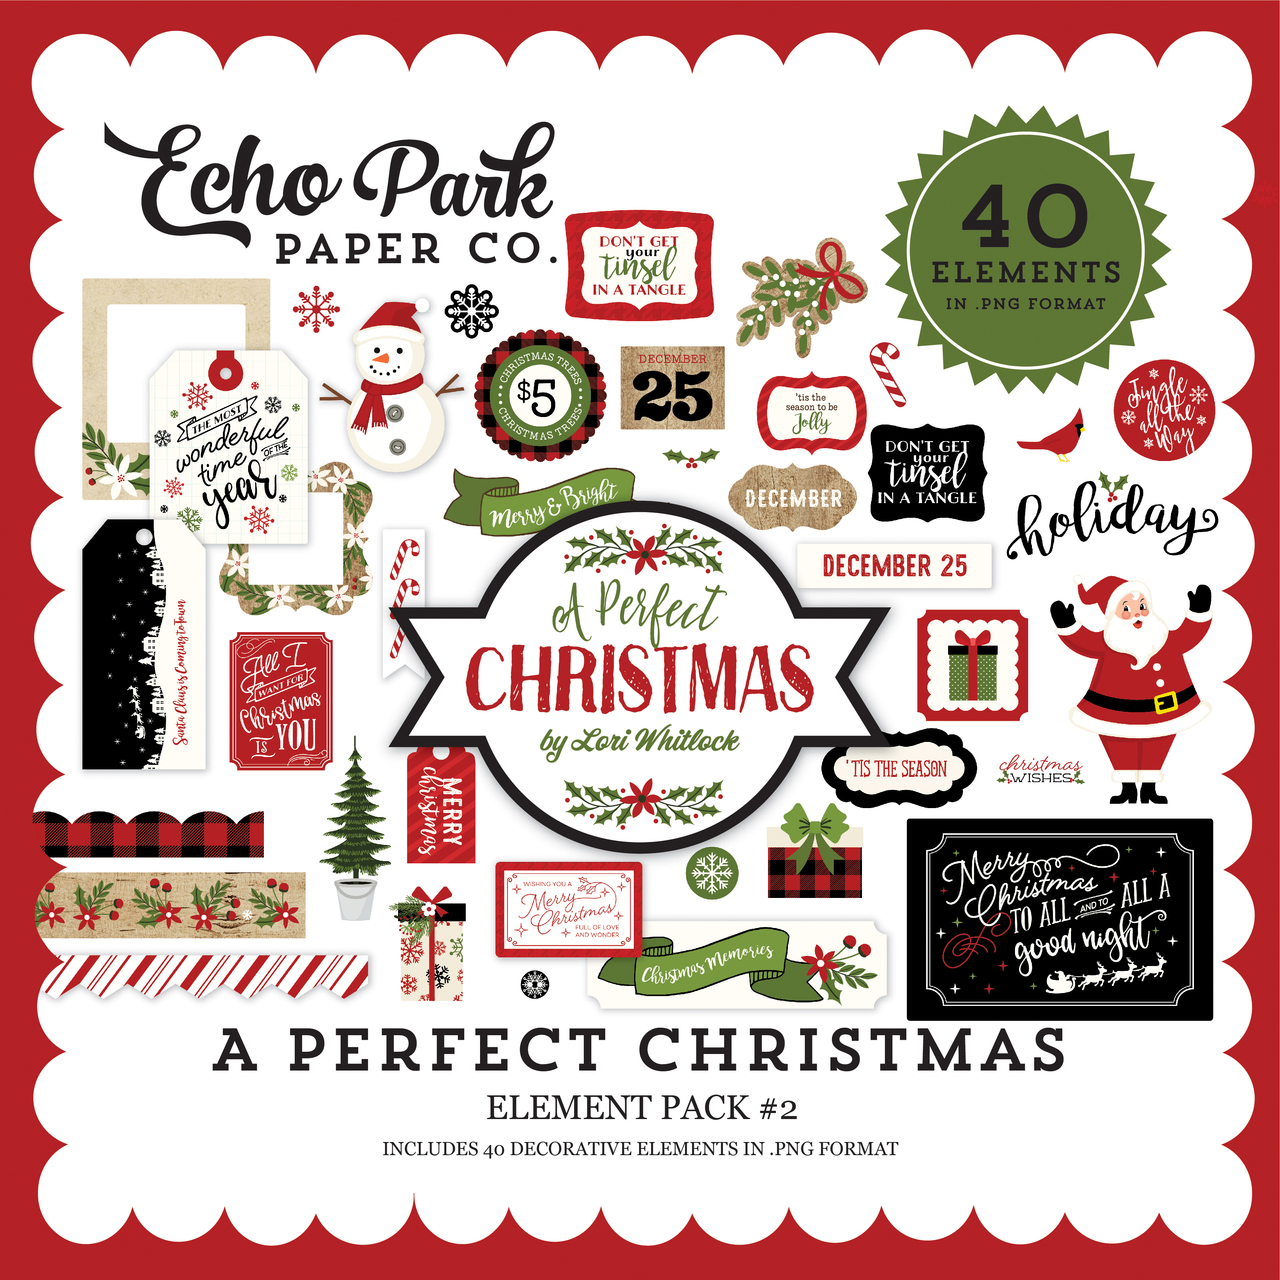 A Perfect Christmas Element Pack #2